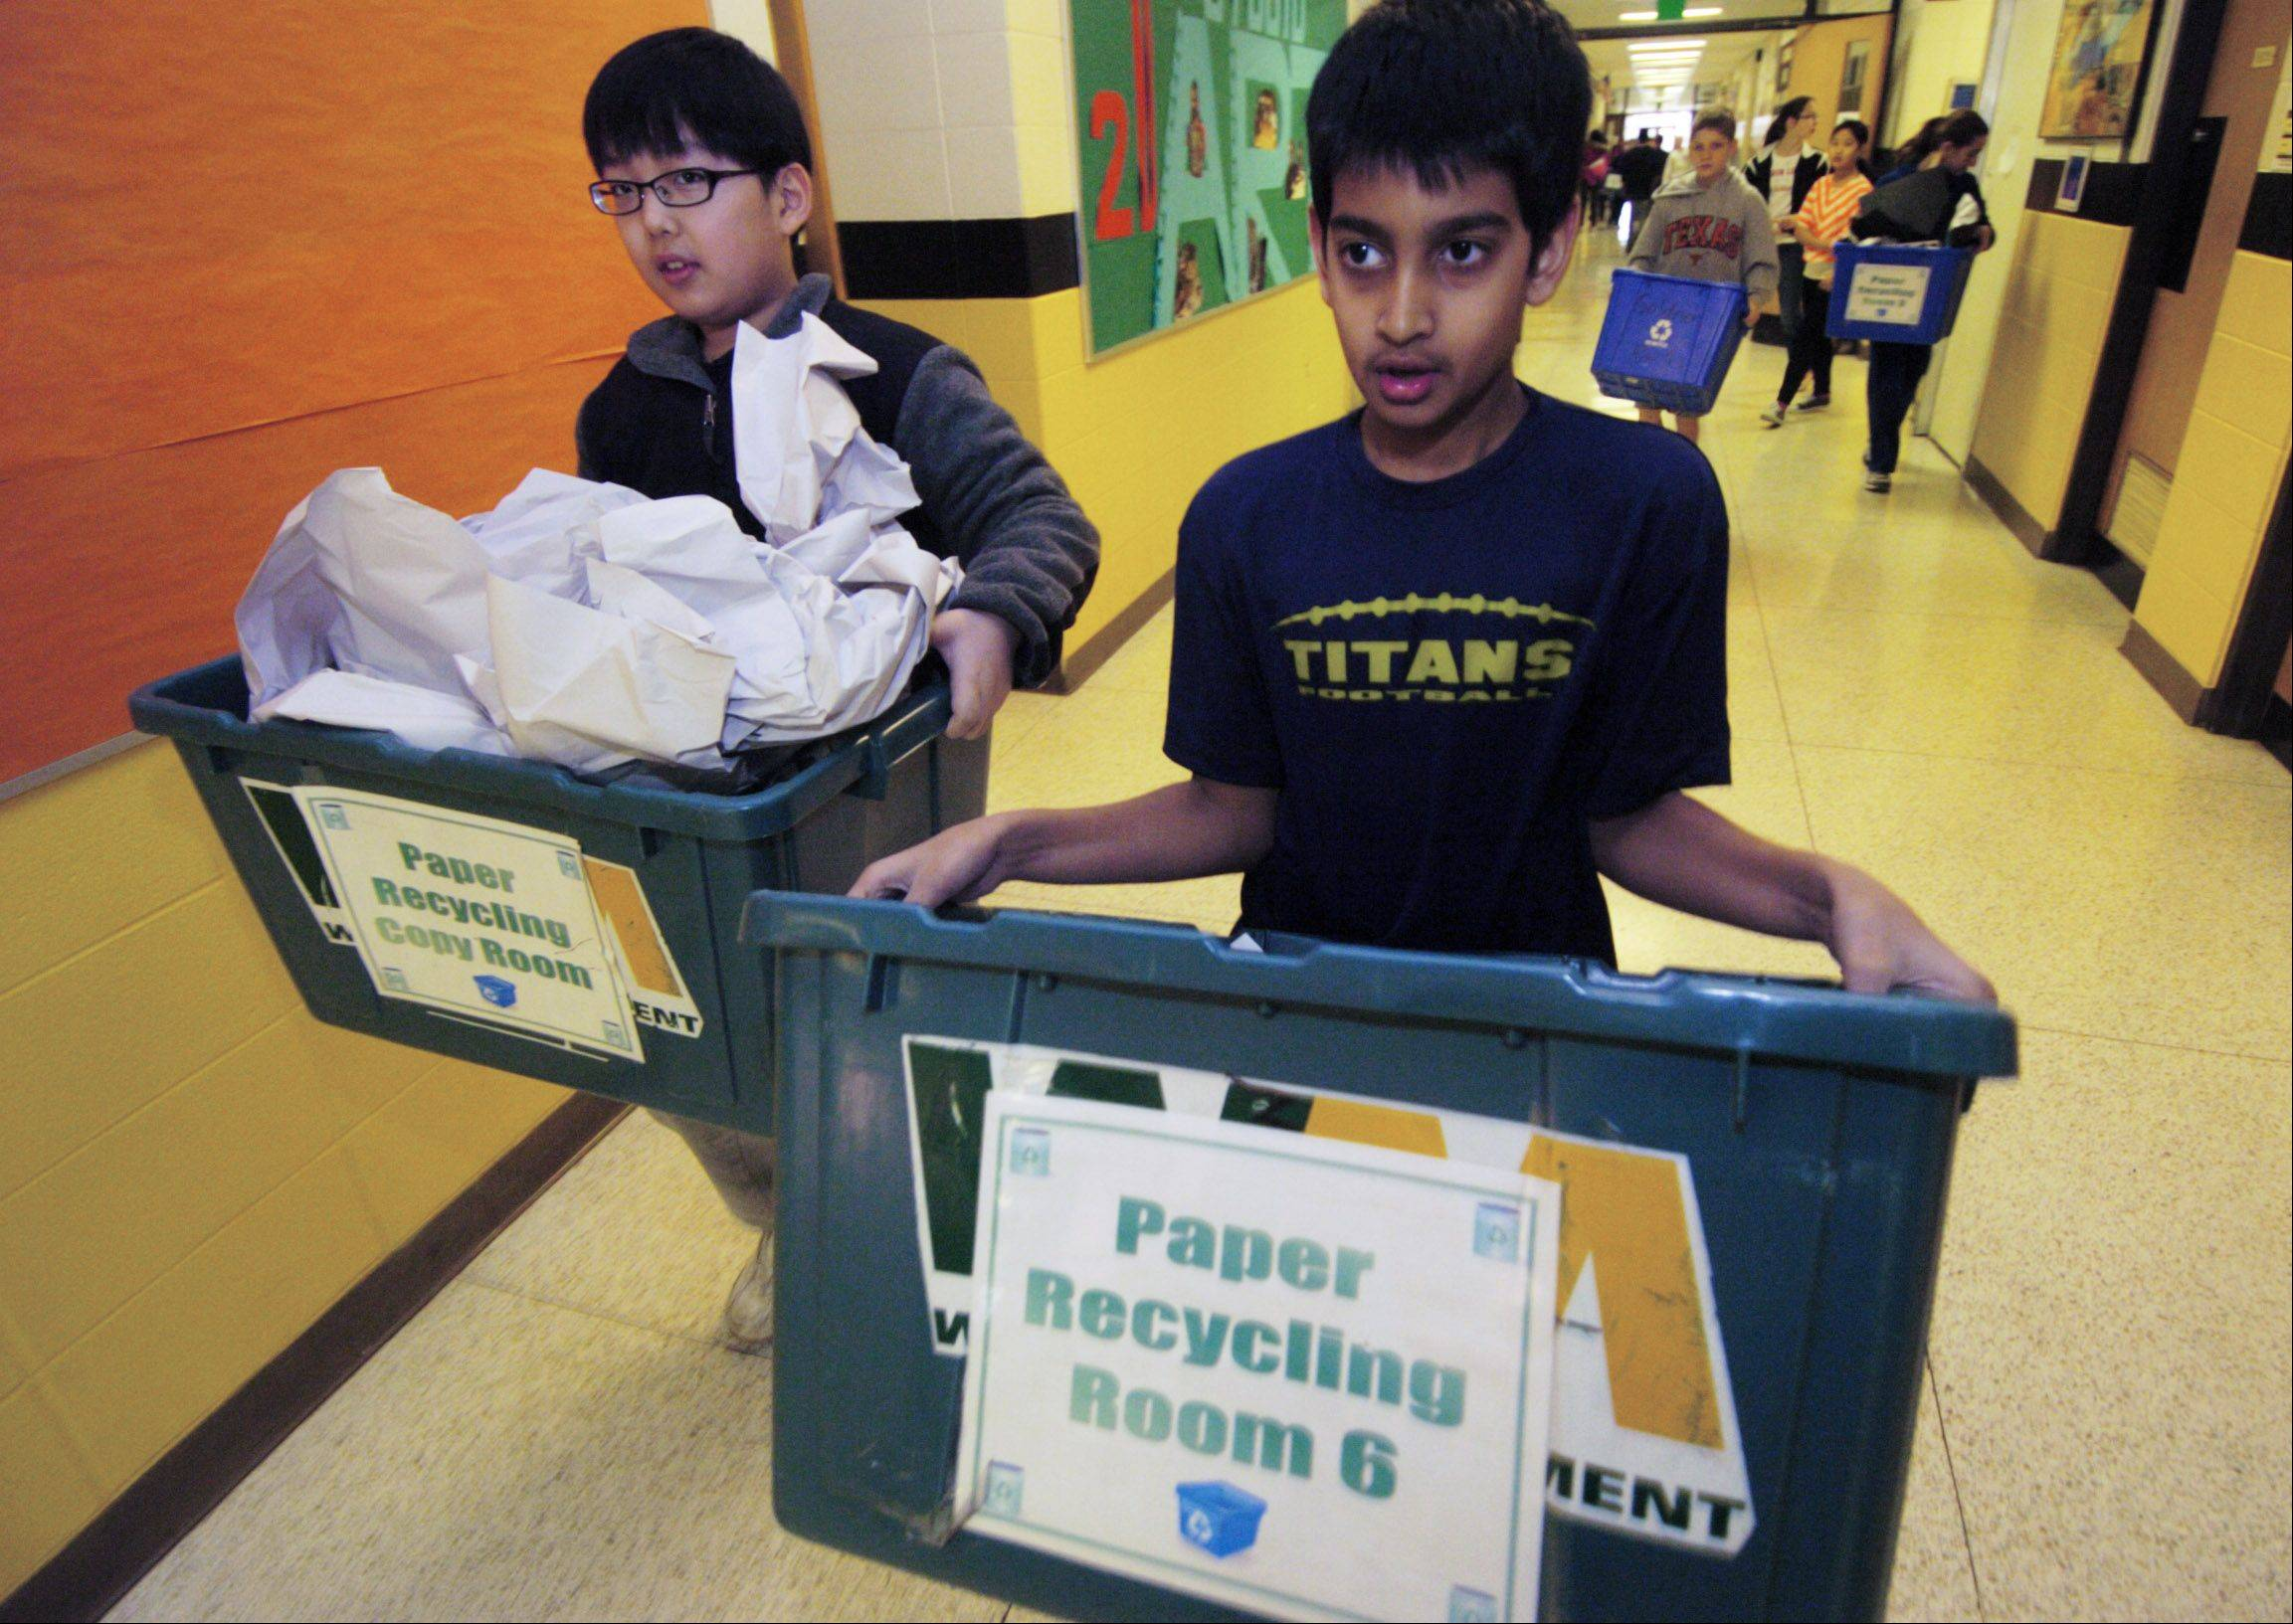 Sixth-graders Patrick An, left, and Dhruv Patel carry recycling bins from classrooms as part of their service learning project at Field Middle School in Northbrook.